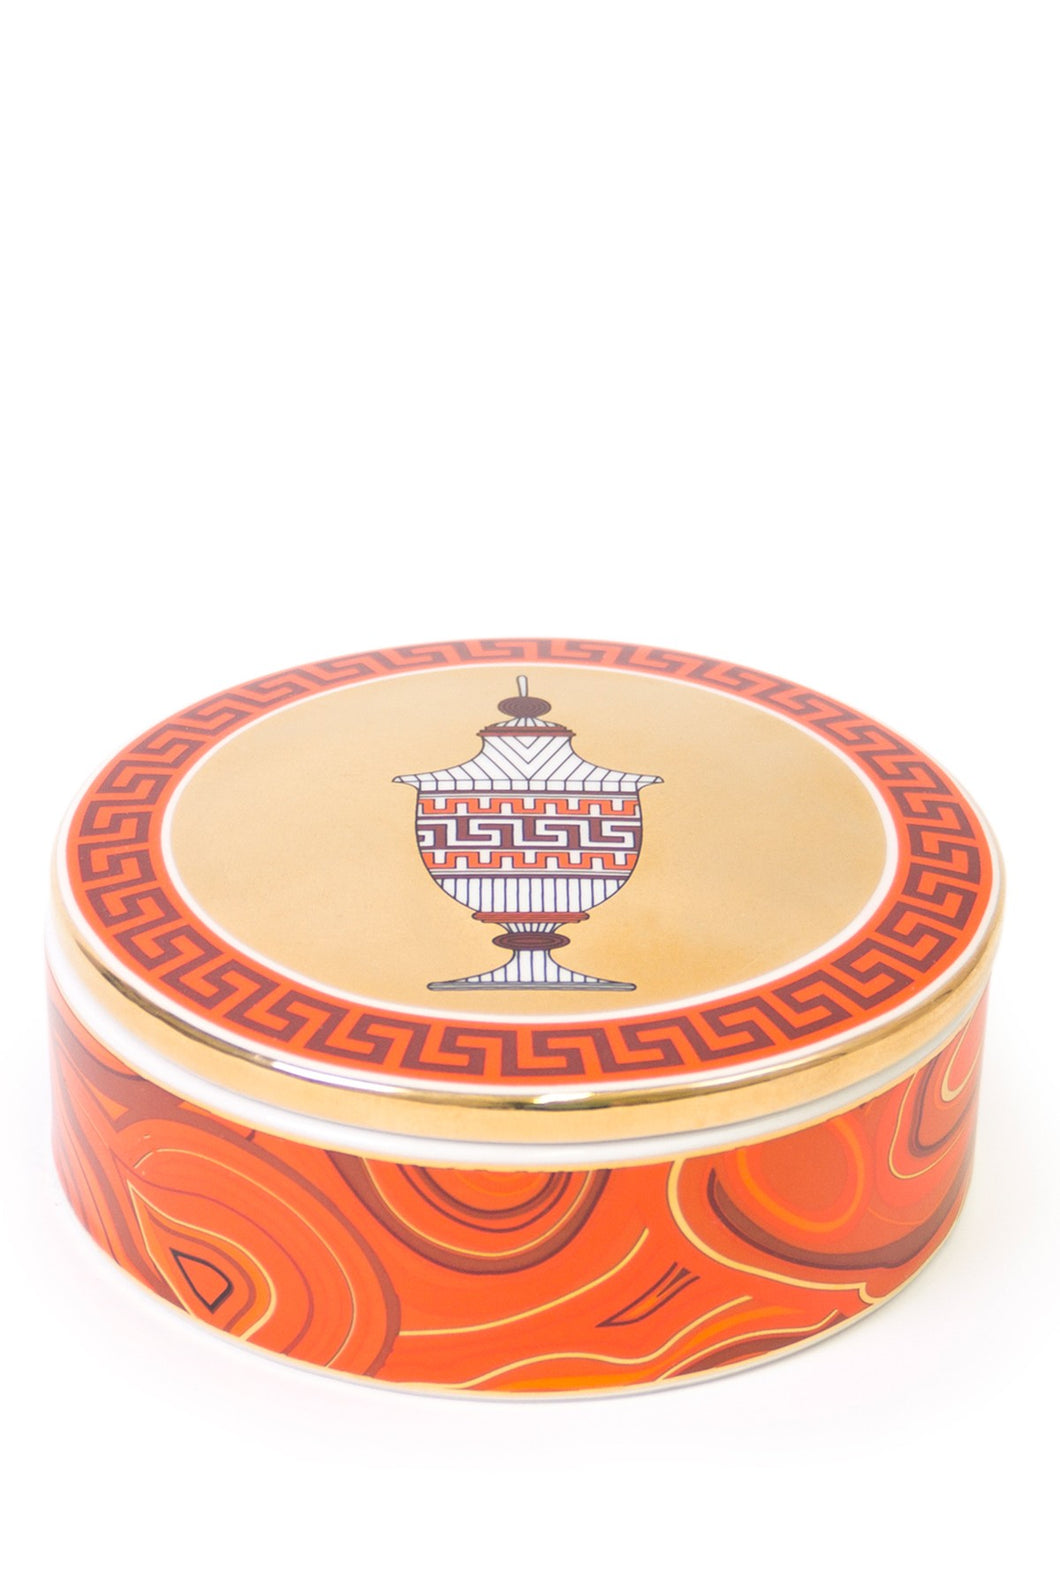 Jonathan Adler Luxembourg Pagoda Trinket Box - Red And Gold